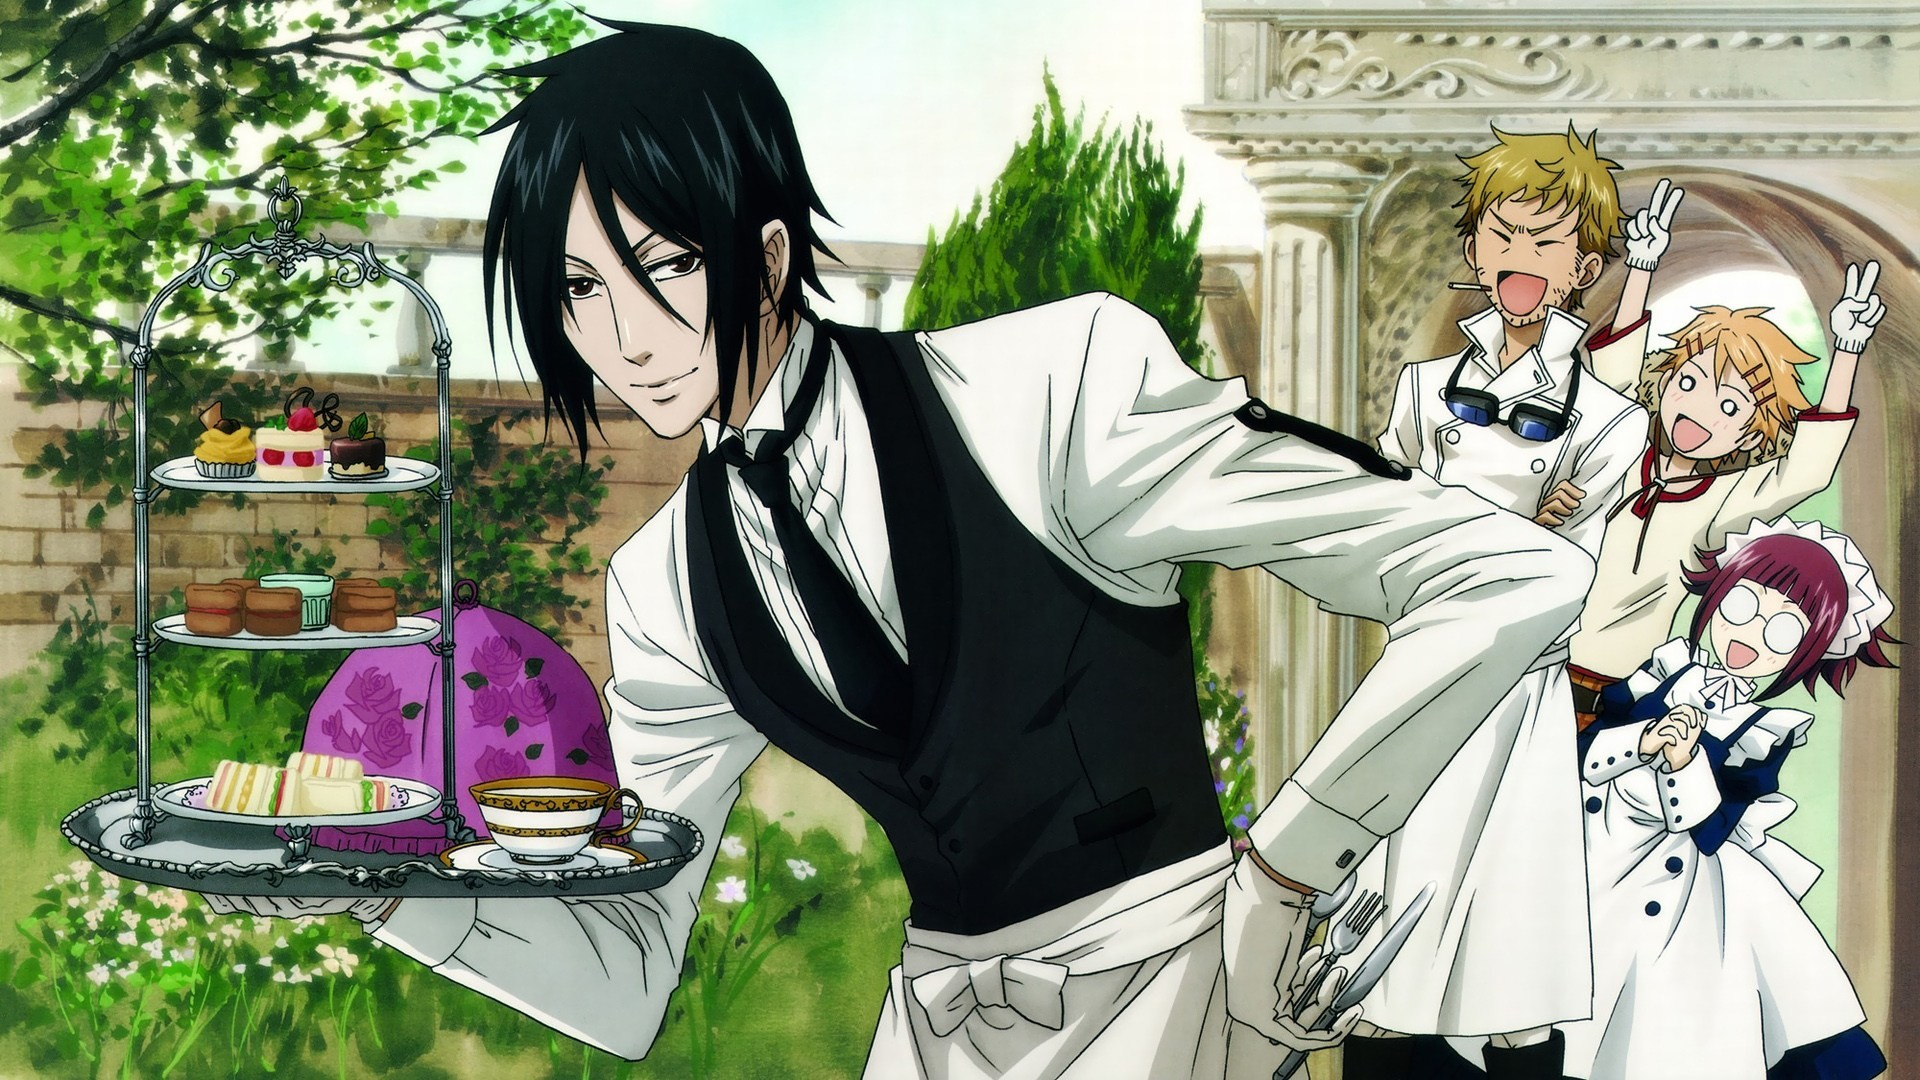 Res: 1920x1080, Sebastian Michaelis Kuroshitsuji (Black Butler) 1080p HD Wallpaper  Background